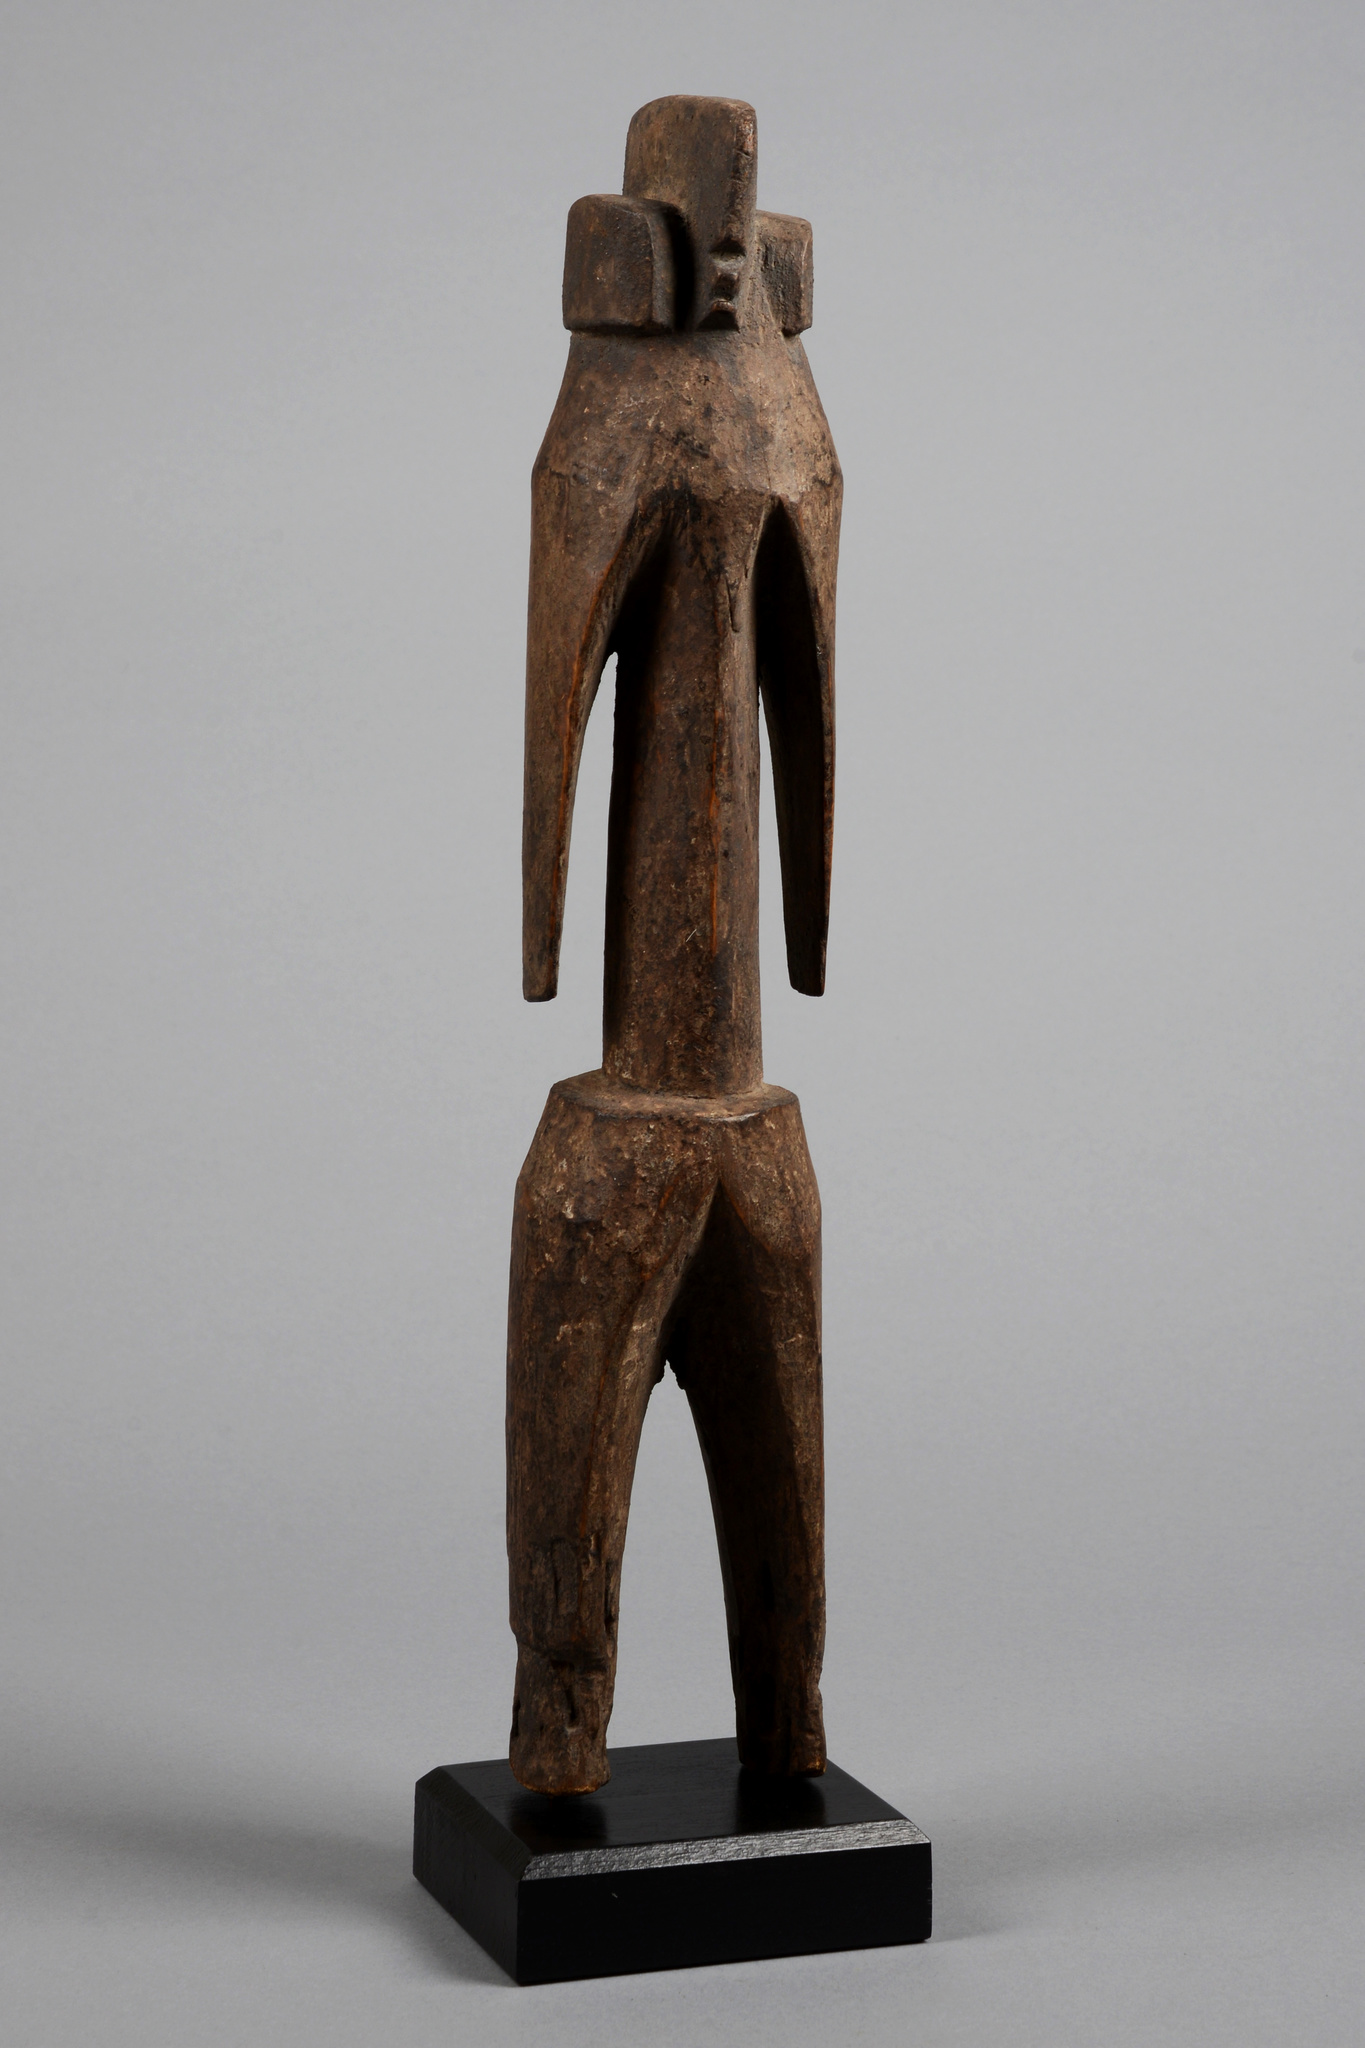 Stehende anthropomorphe Figur